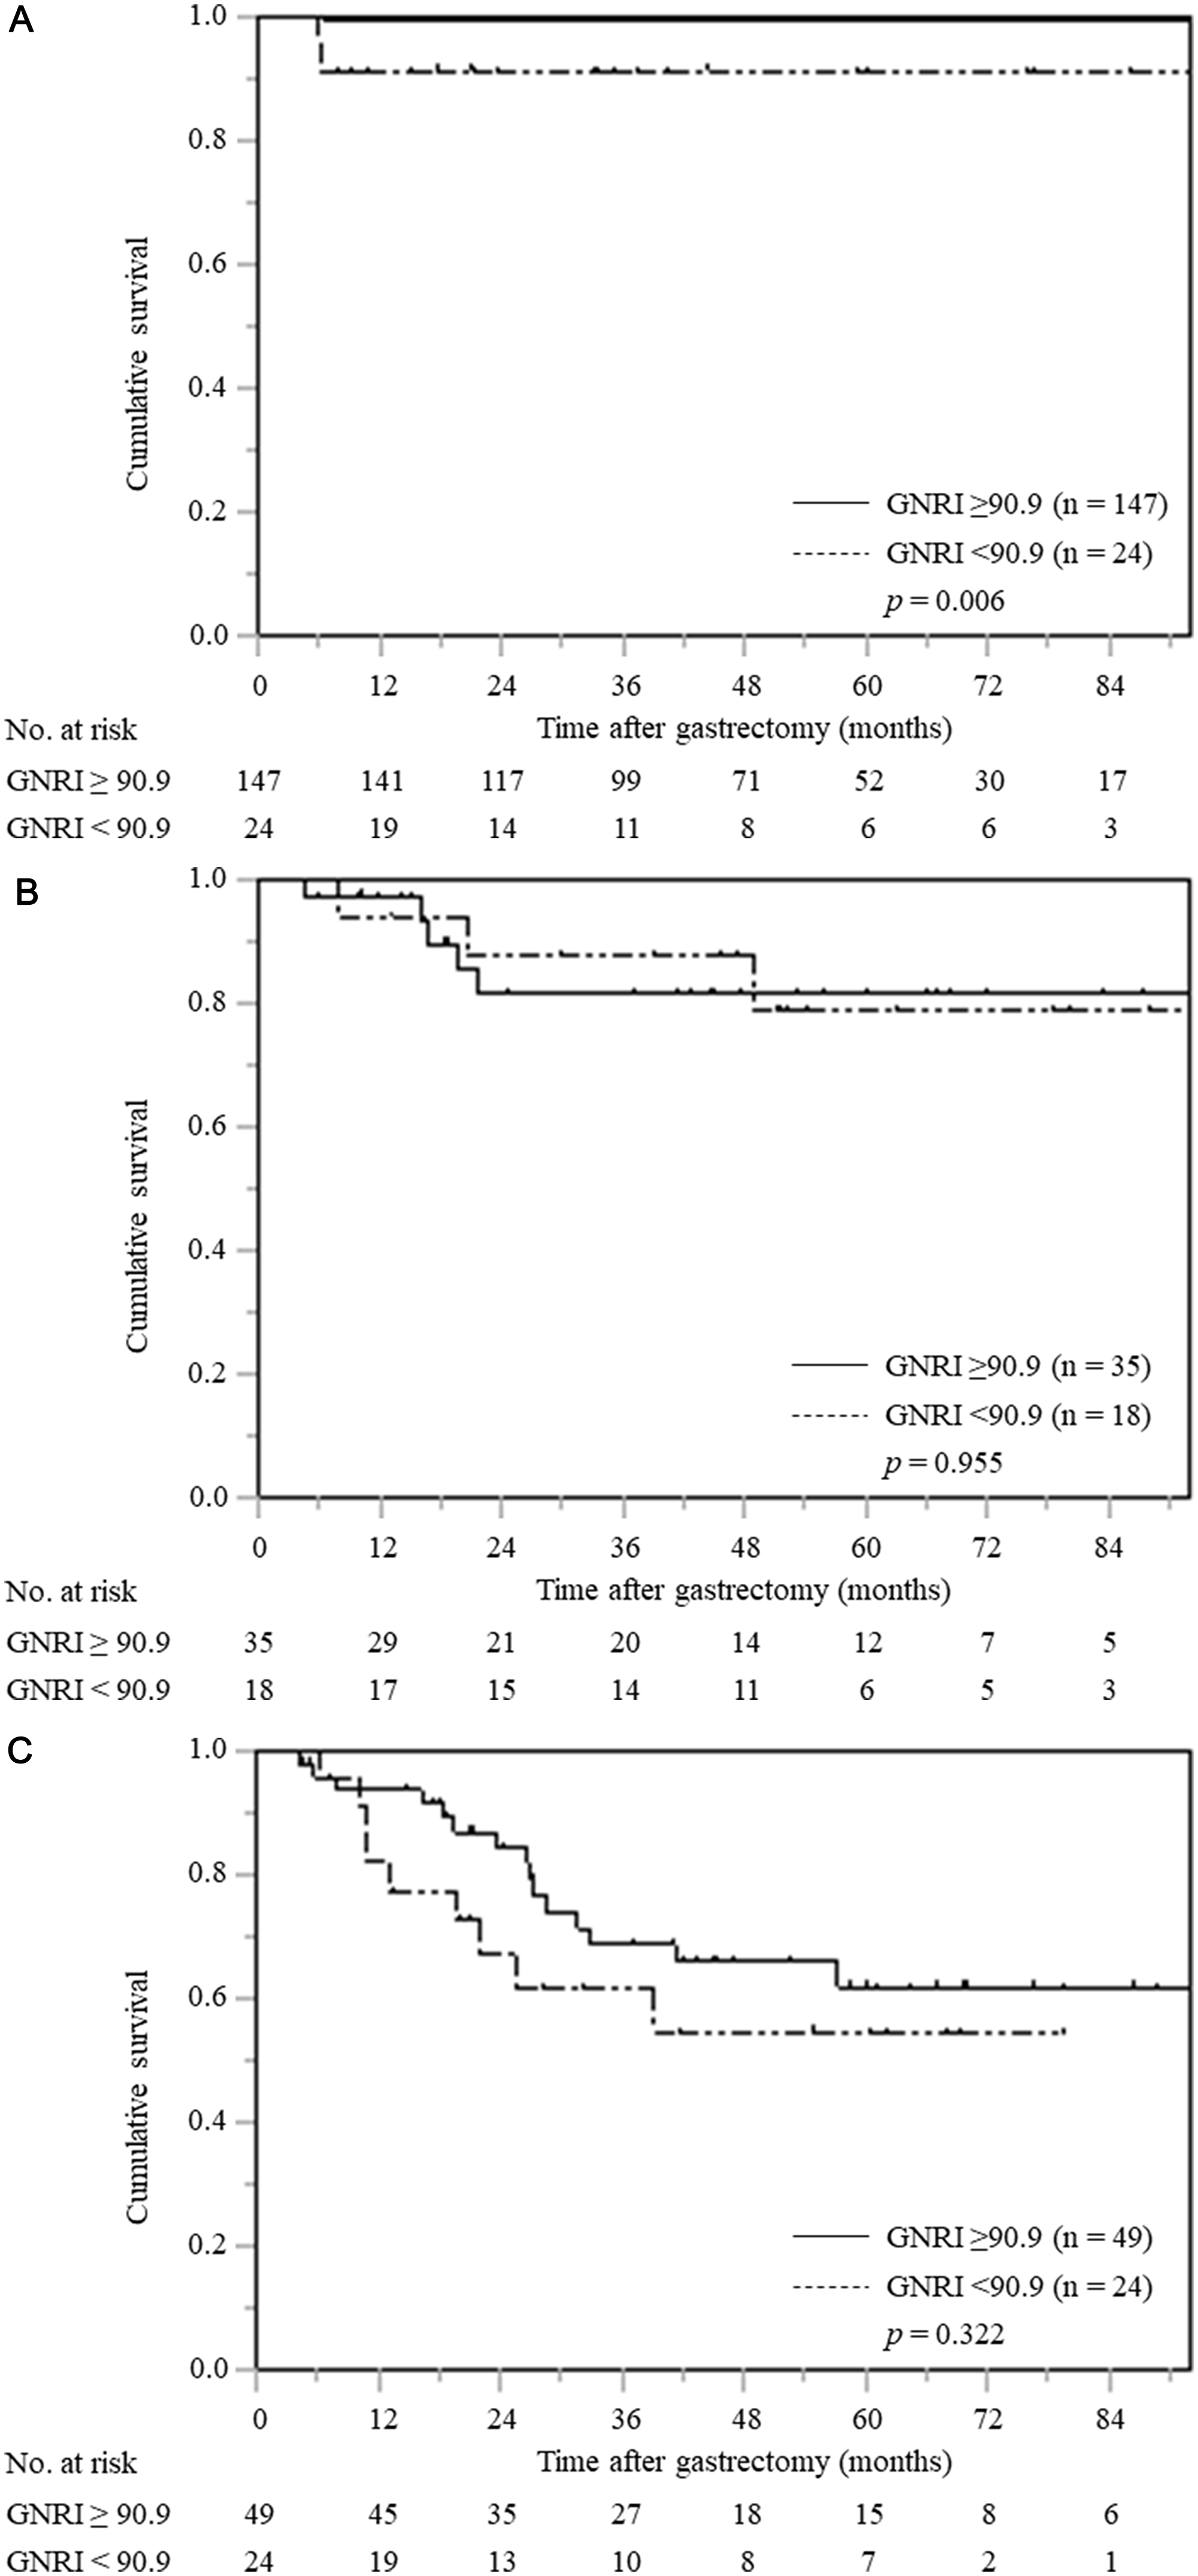 Cancer-specific survival curves based on GNRI according to pTNM stage.